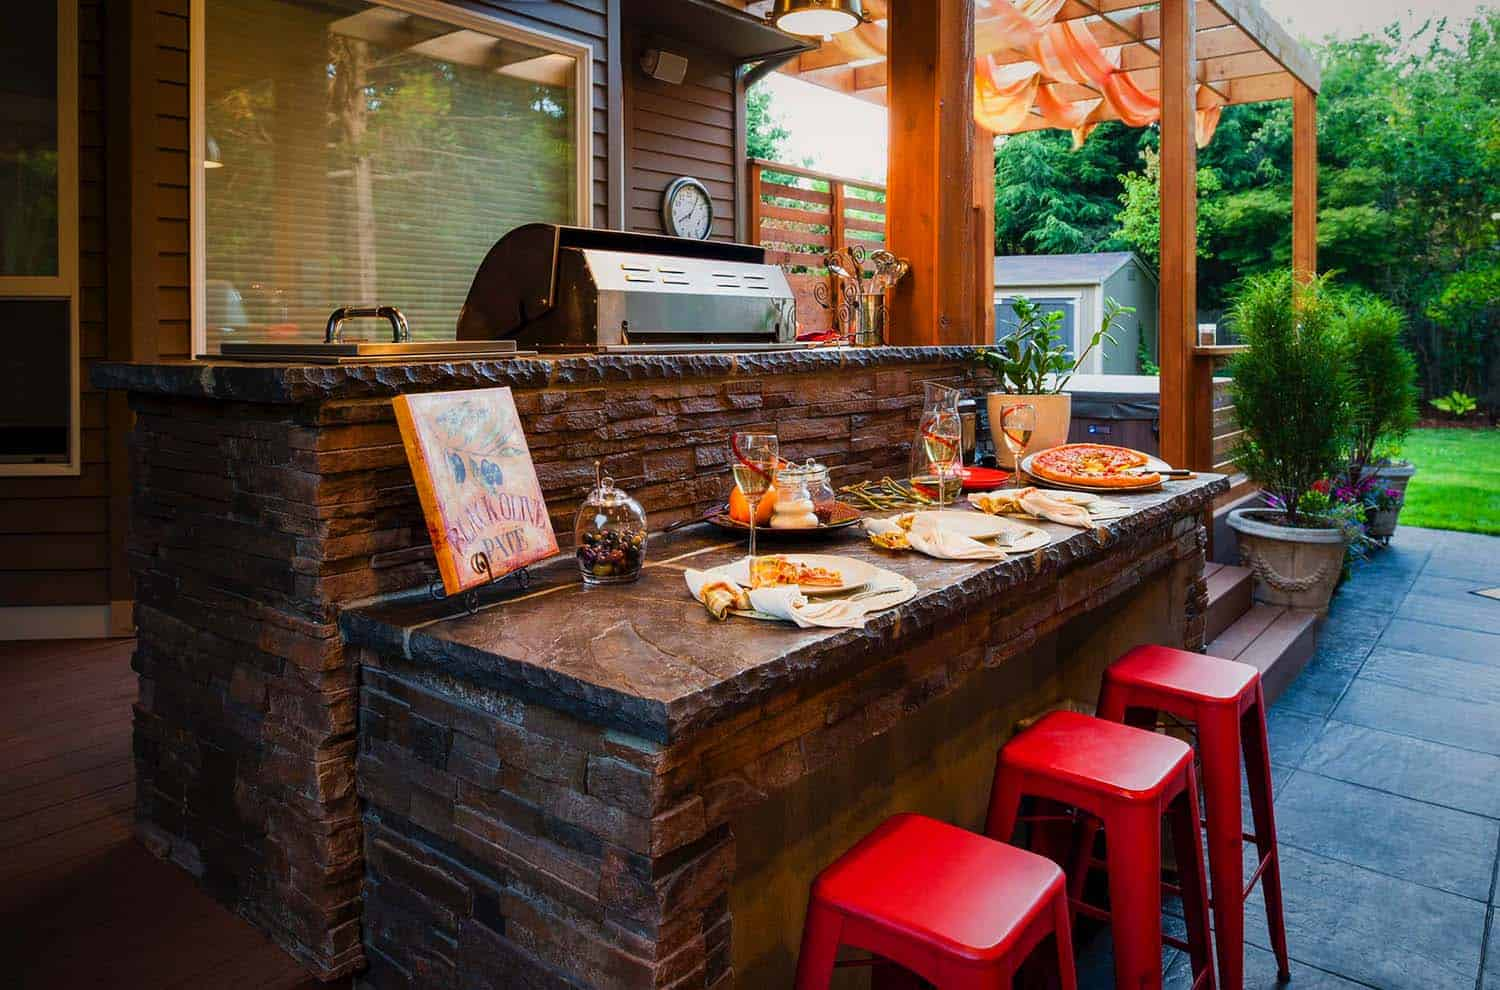 Outdoor Kitchens-Bars Entertaining-06-1 Kindesign.jpg